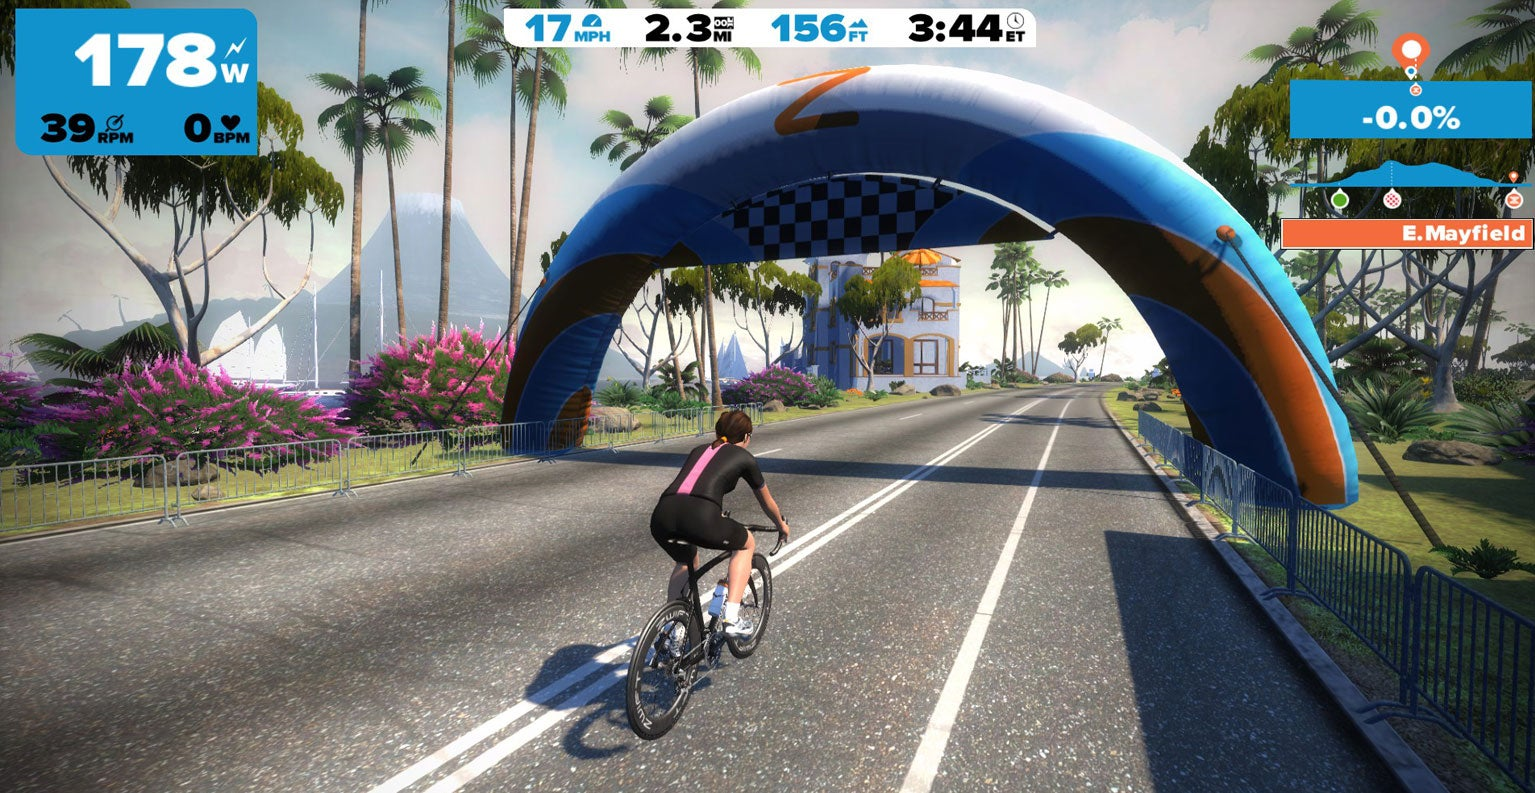 Zwift Just Your Typical Mmpfep Peloton Magazine